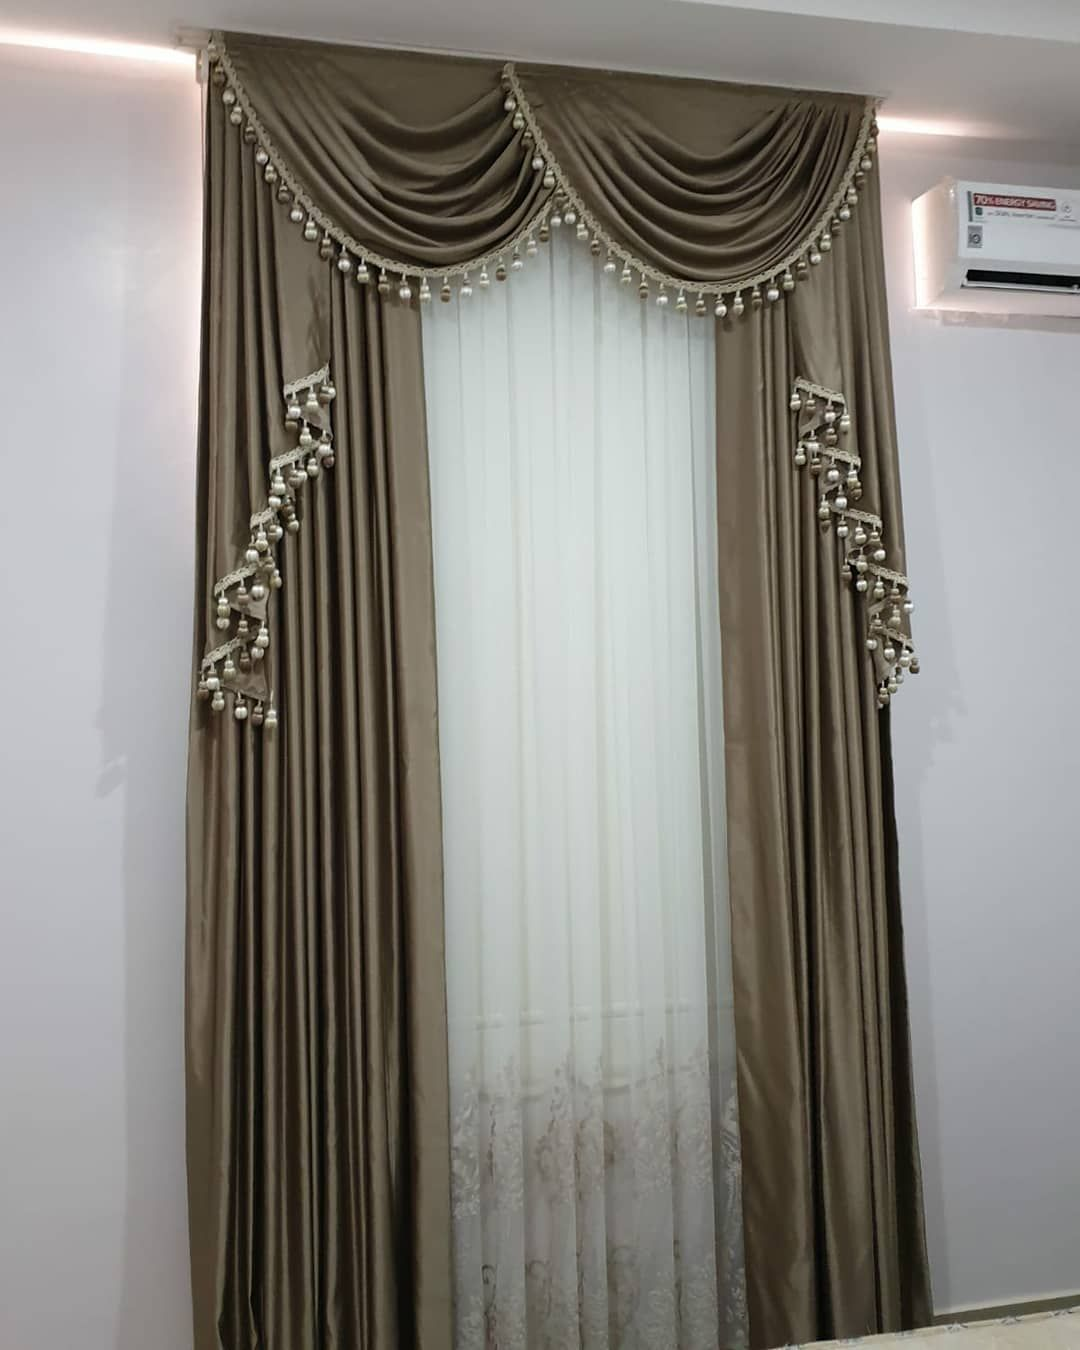 Our Curtain Installation Finished At Abuja If You Need Unique And